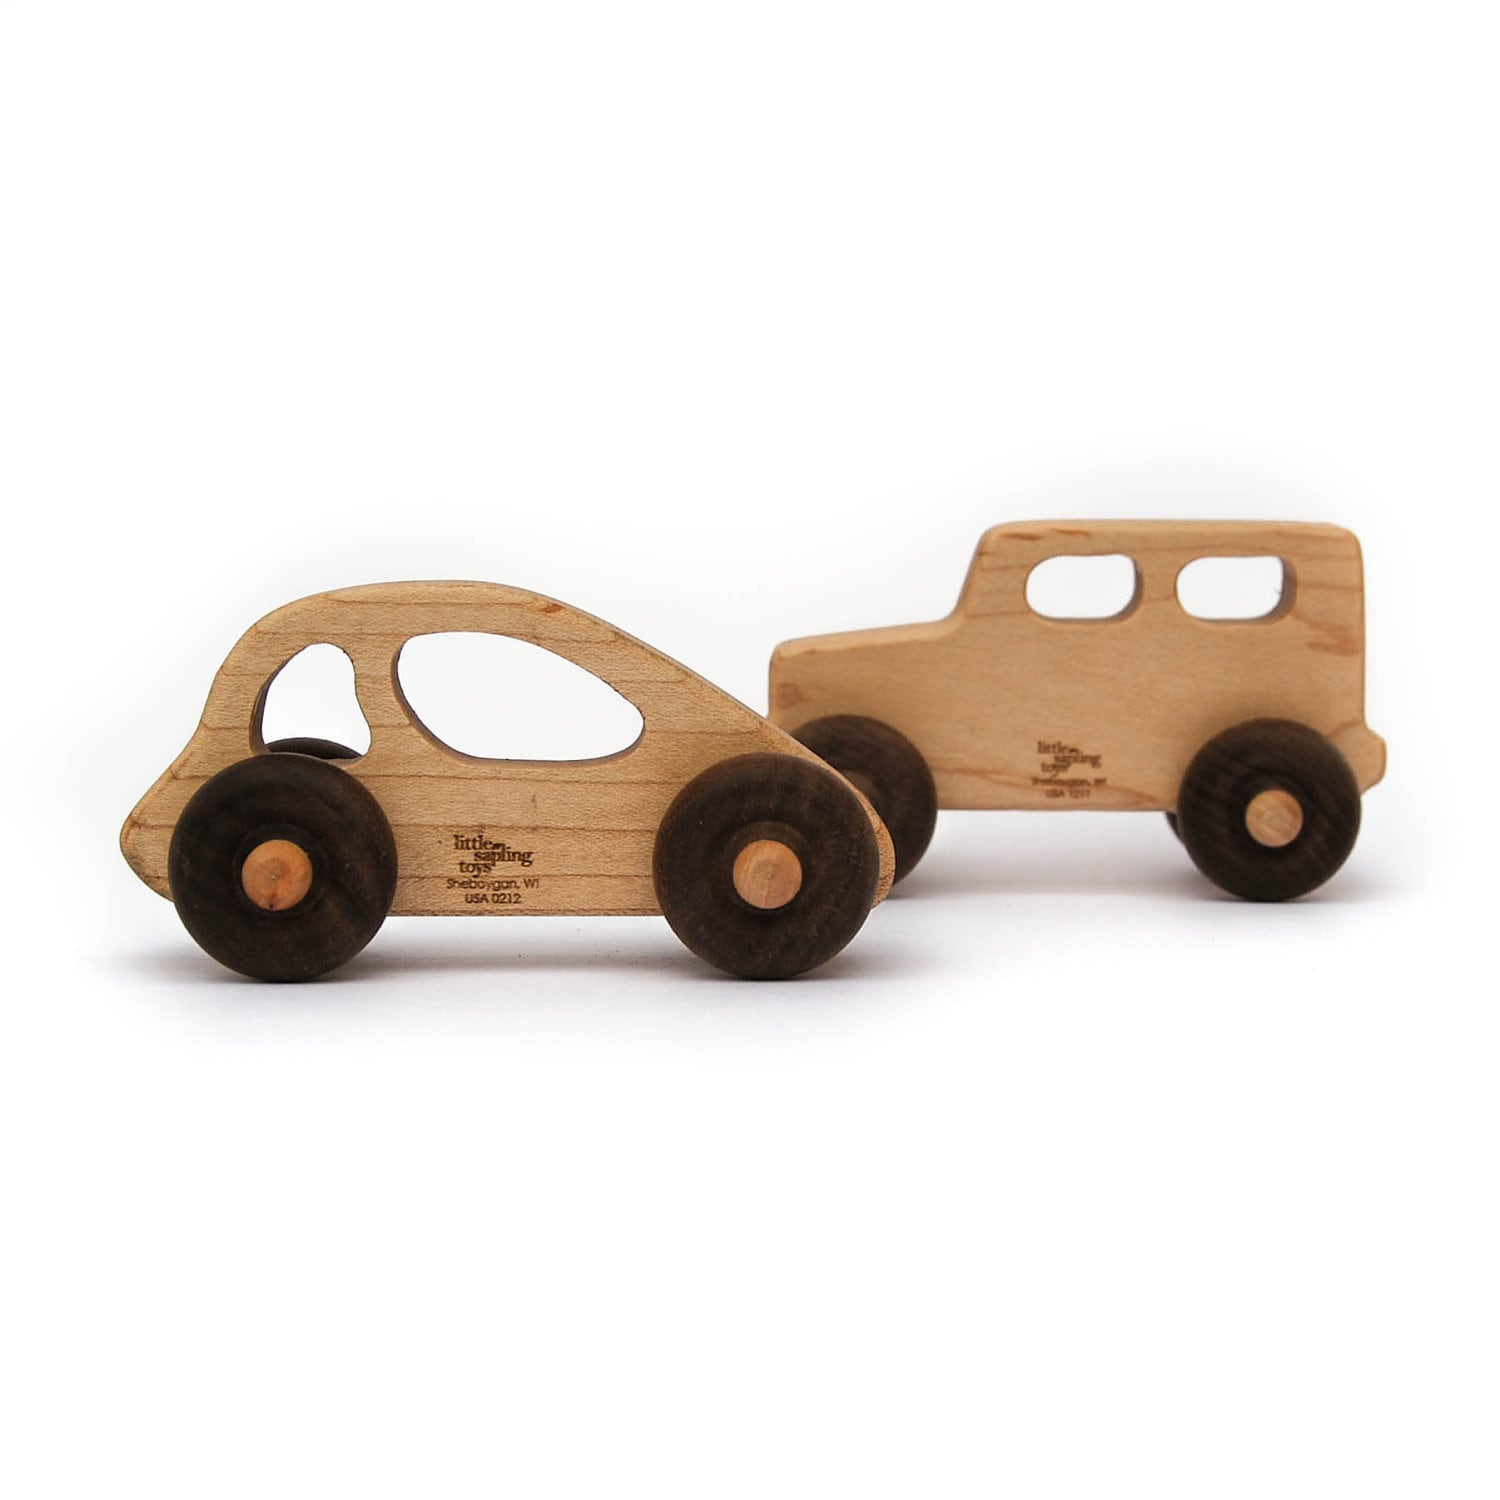 Wooden Toy Cars And Trucks : The gallery for gt wooden toy cars